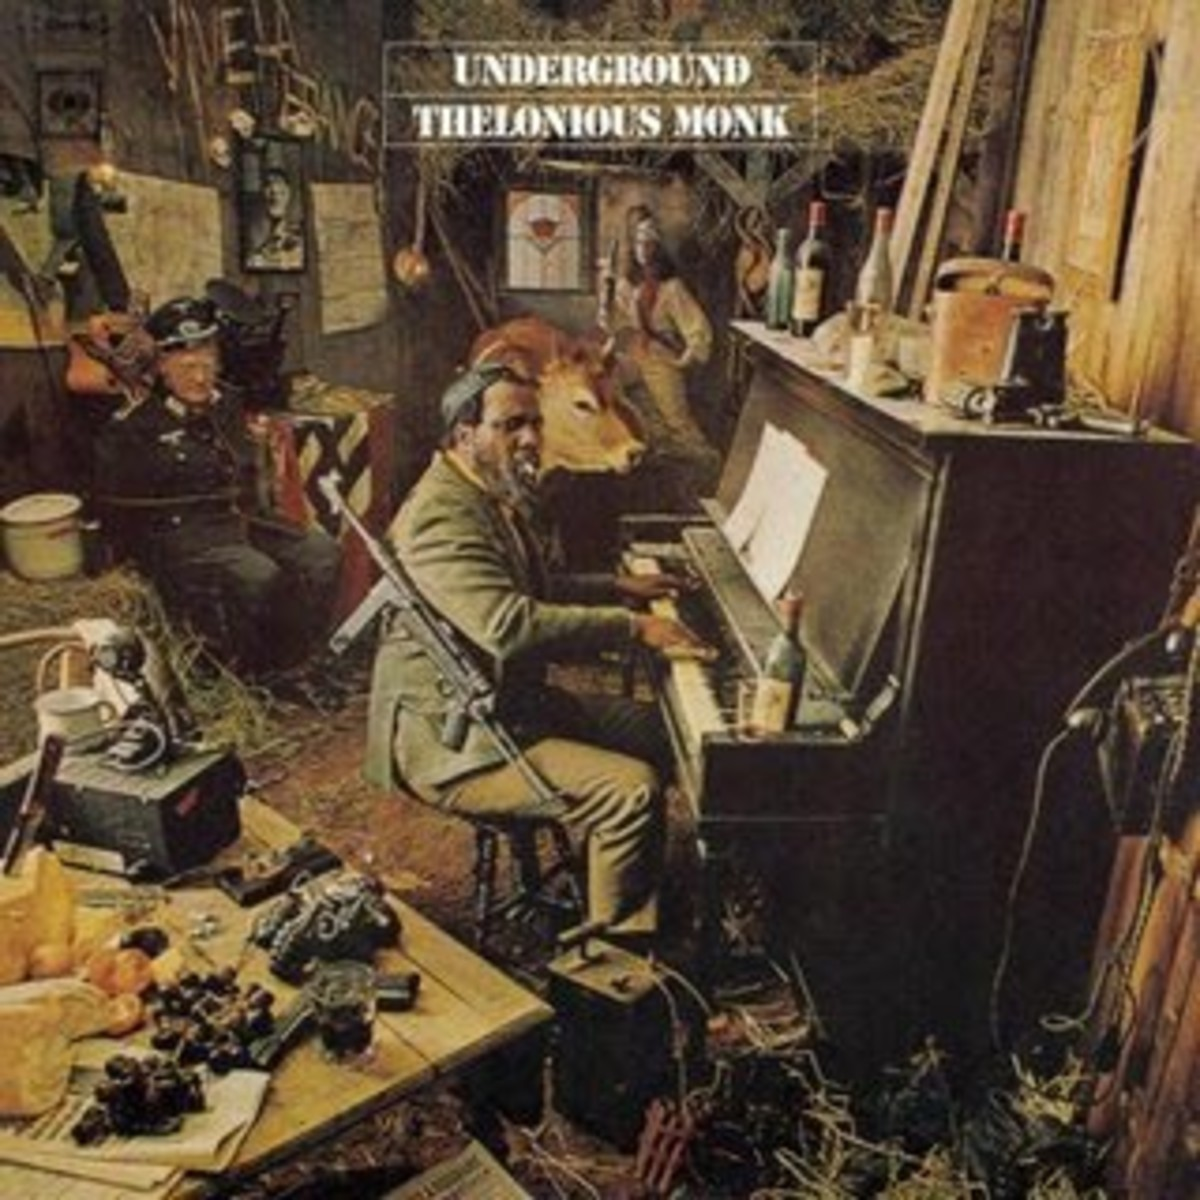 Thelonious Monk's music in this album revels in the angular and odd meters.